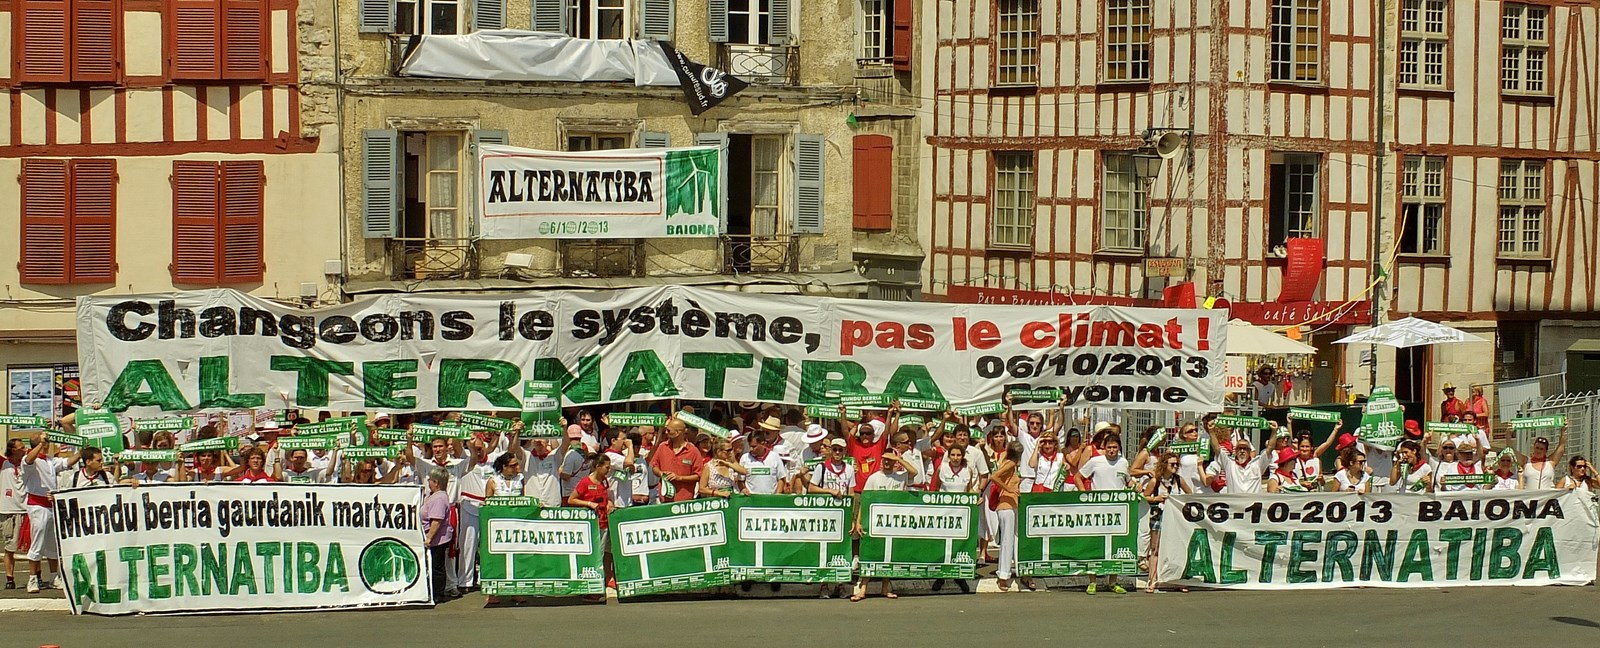 Alternatiba_2013_-_Baionako_pestak.jpg